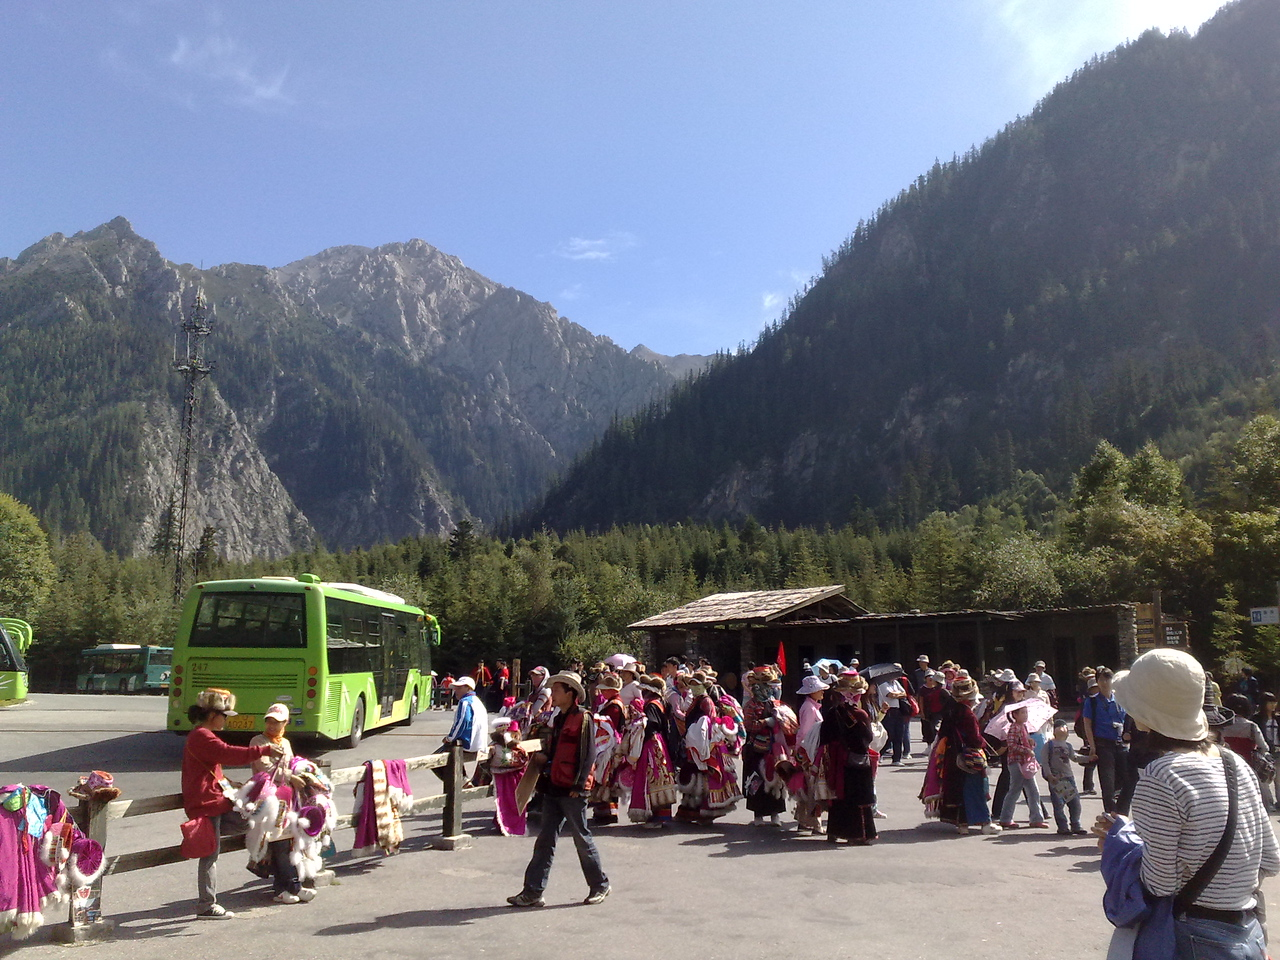 20090824_1016_0771 The last bus-stop of the slightly-less-commonly visited Zechawa Valley. Yes, that is a big horde of locals waiting at the bus-stop, waiting to pounce on the tourists as they alight off the bus.